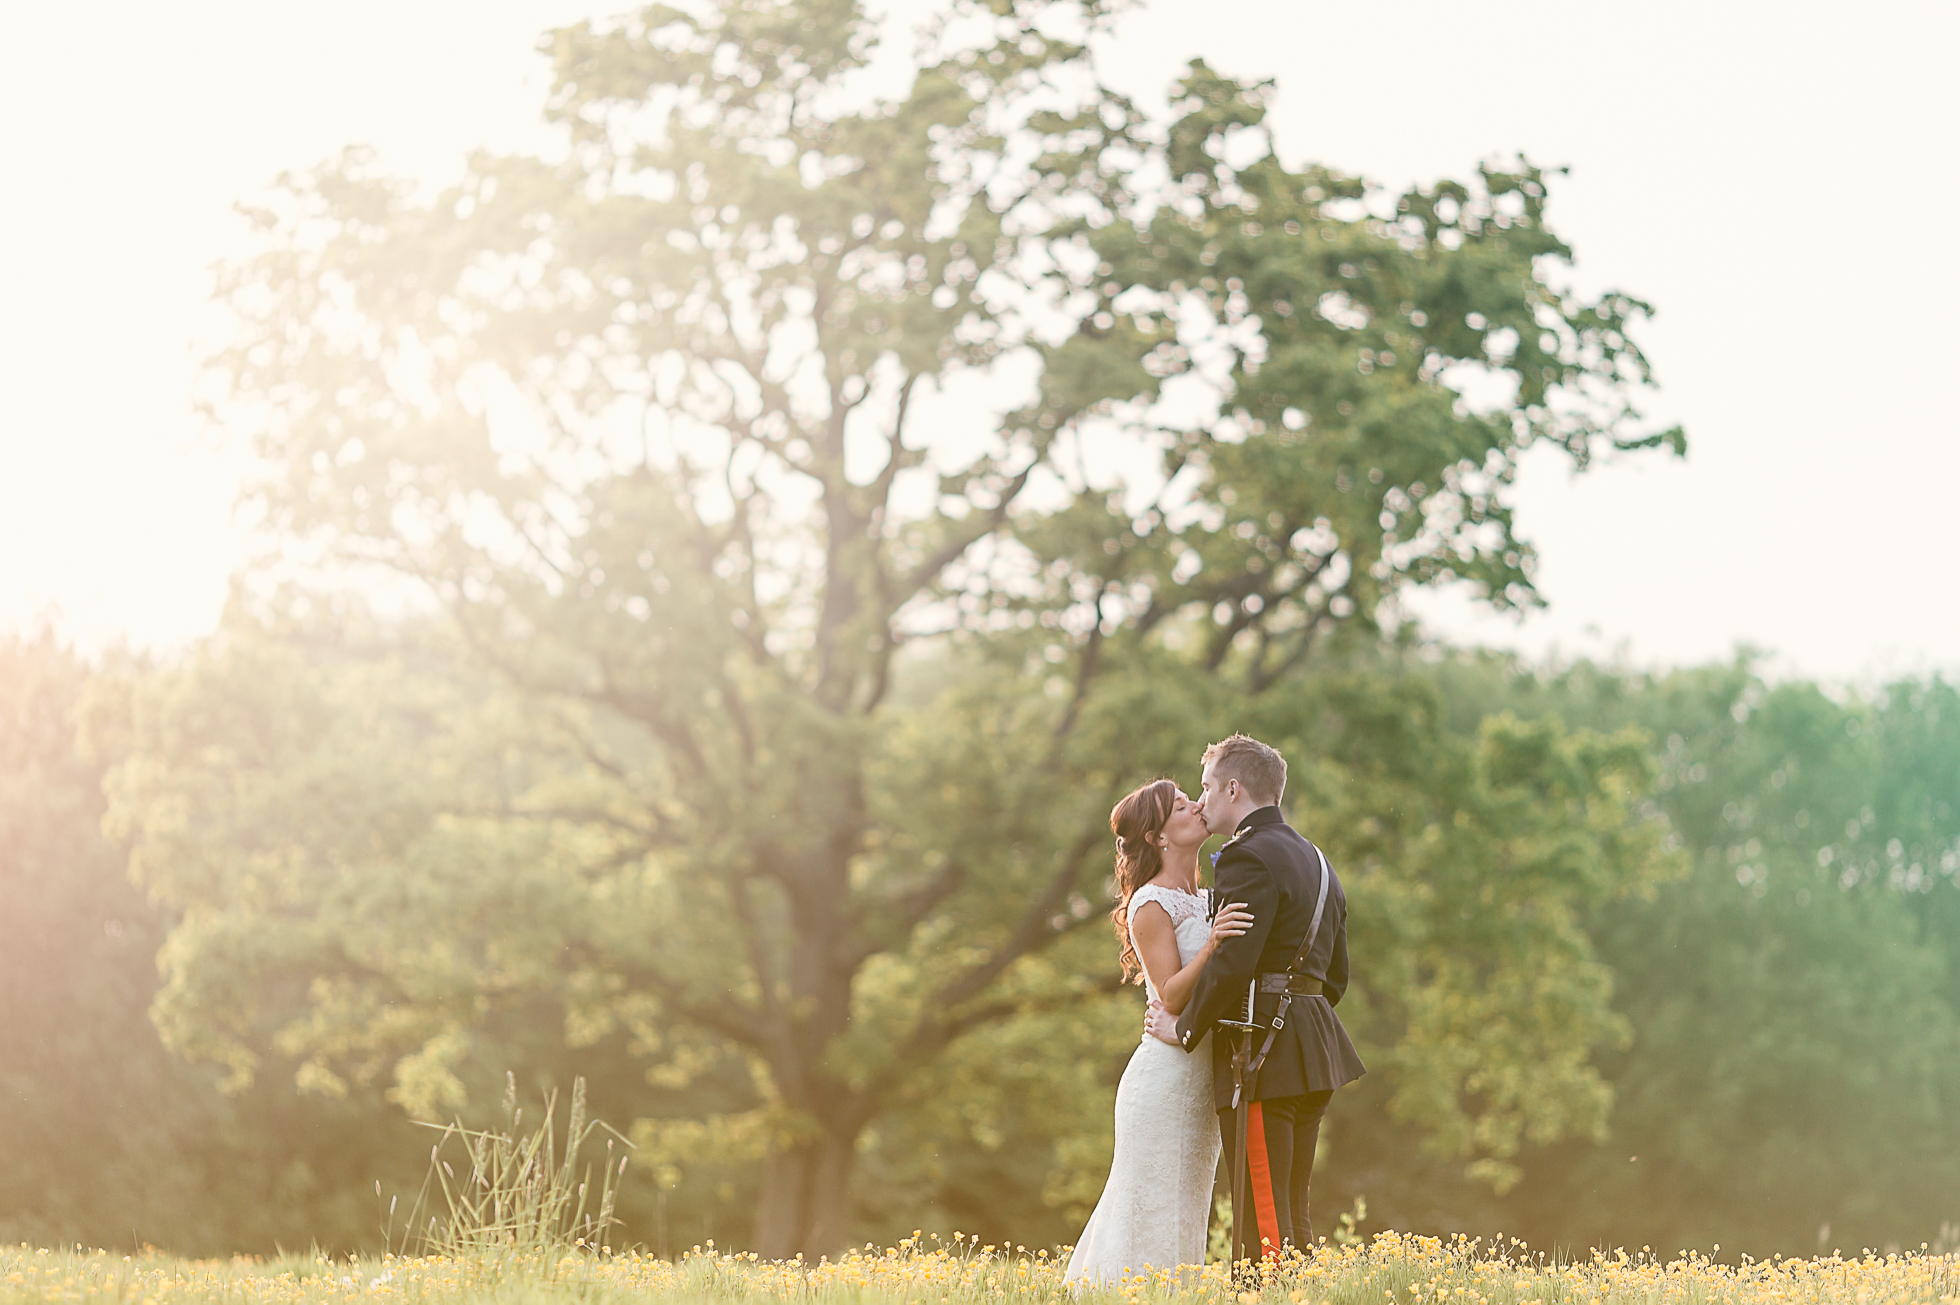 Wedding | Swallows Oast | Gemma & Tom